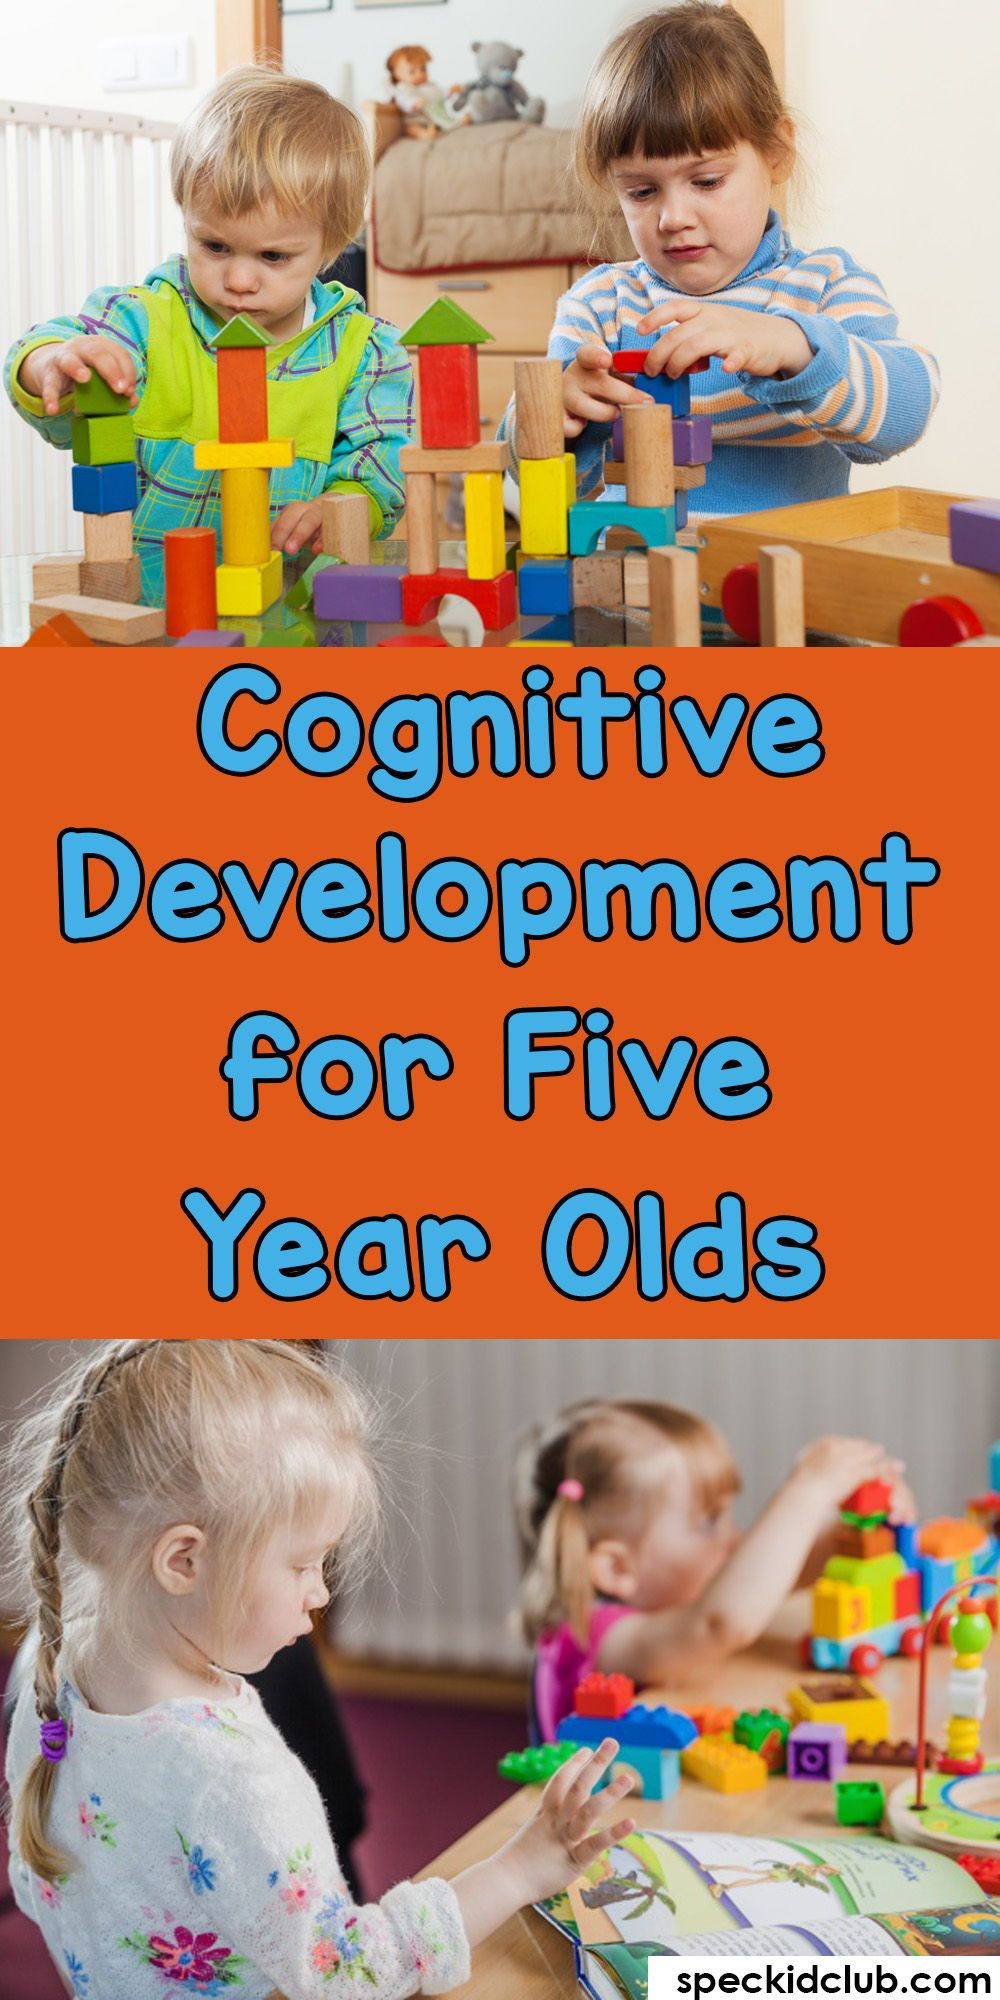 5 Stimulating Activities for 5 years Old Cognitive